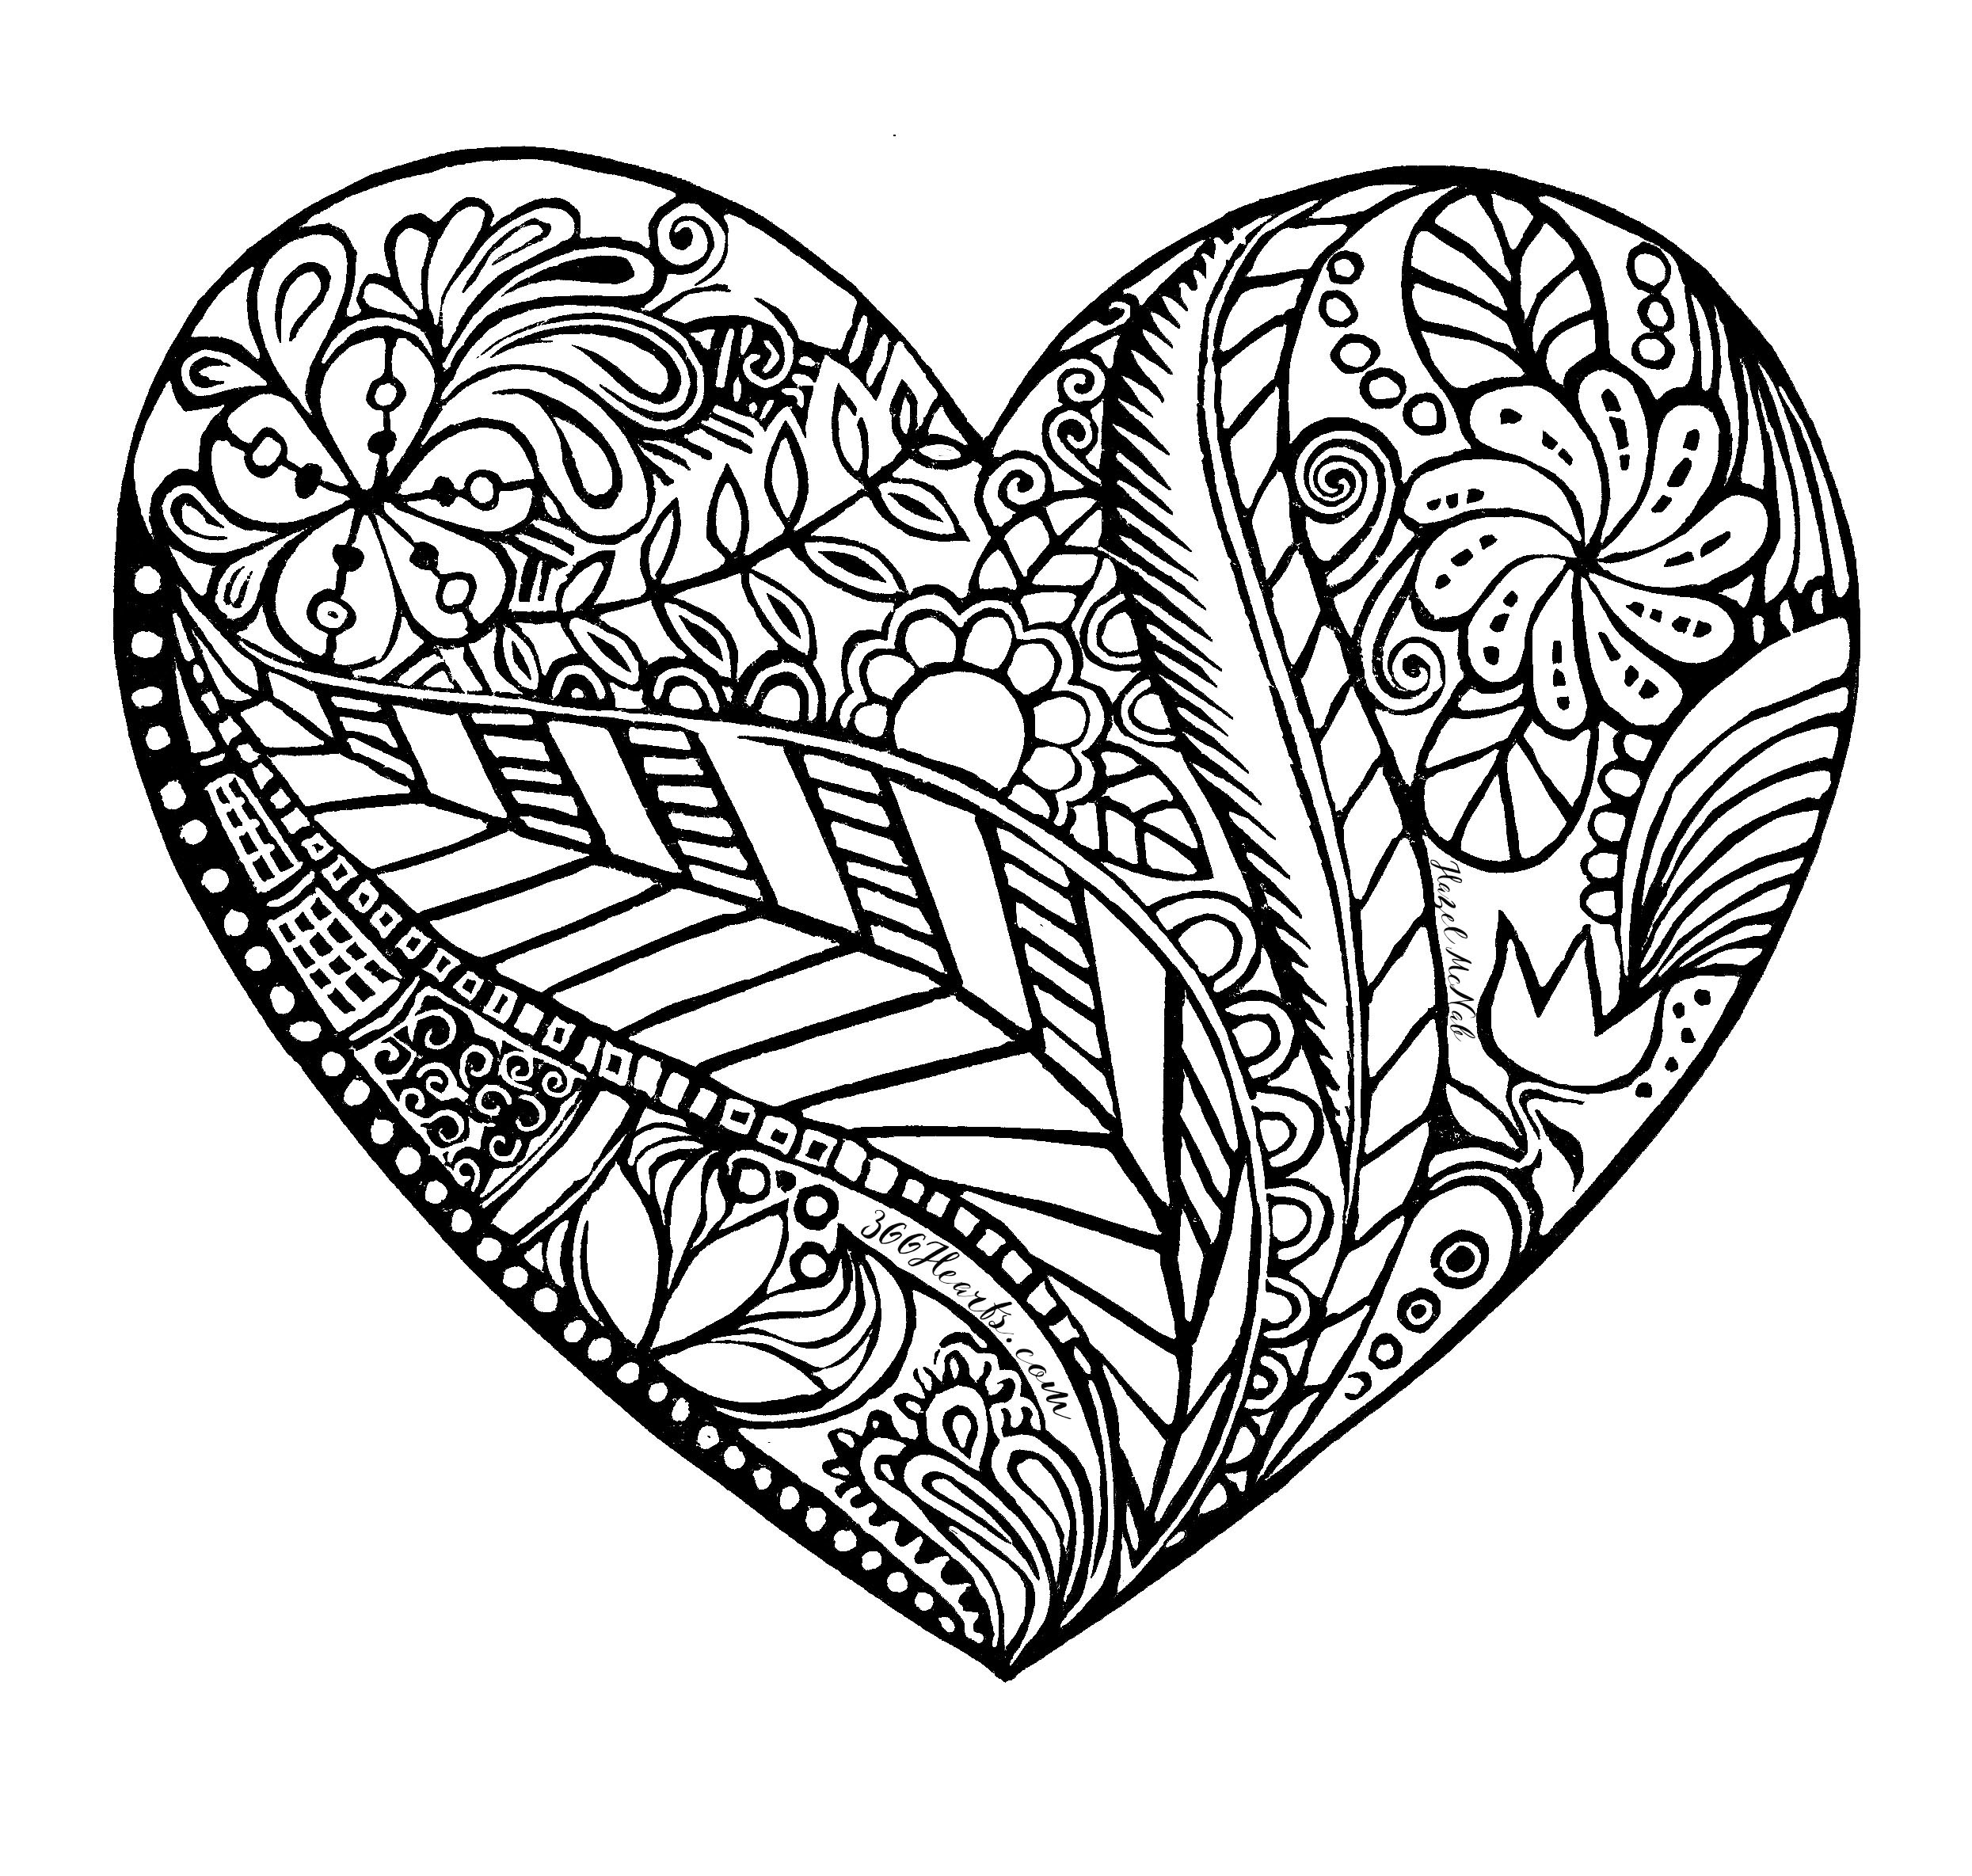 A heart to color by 366Hearts.com